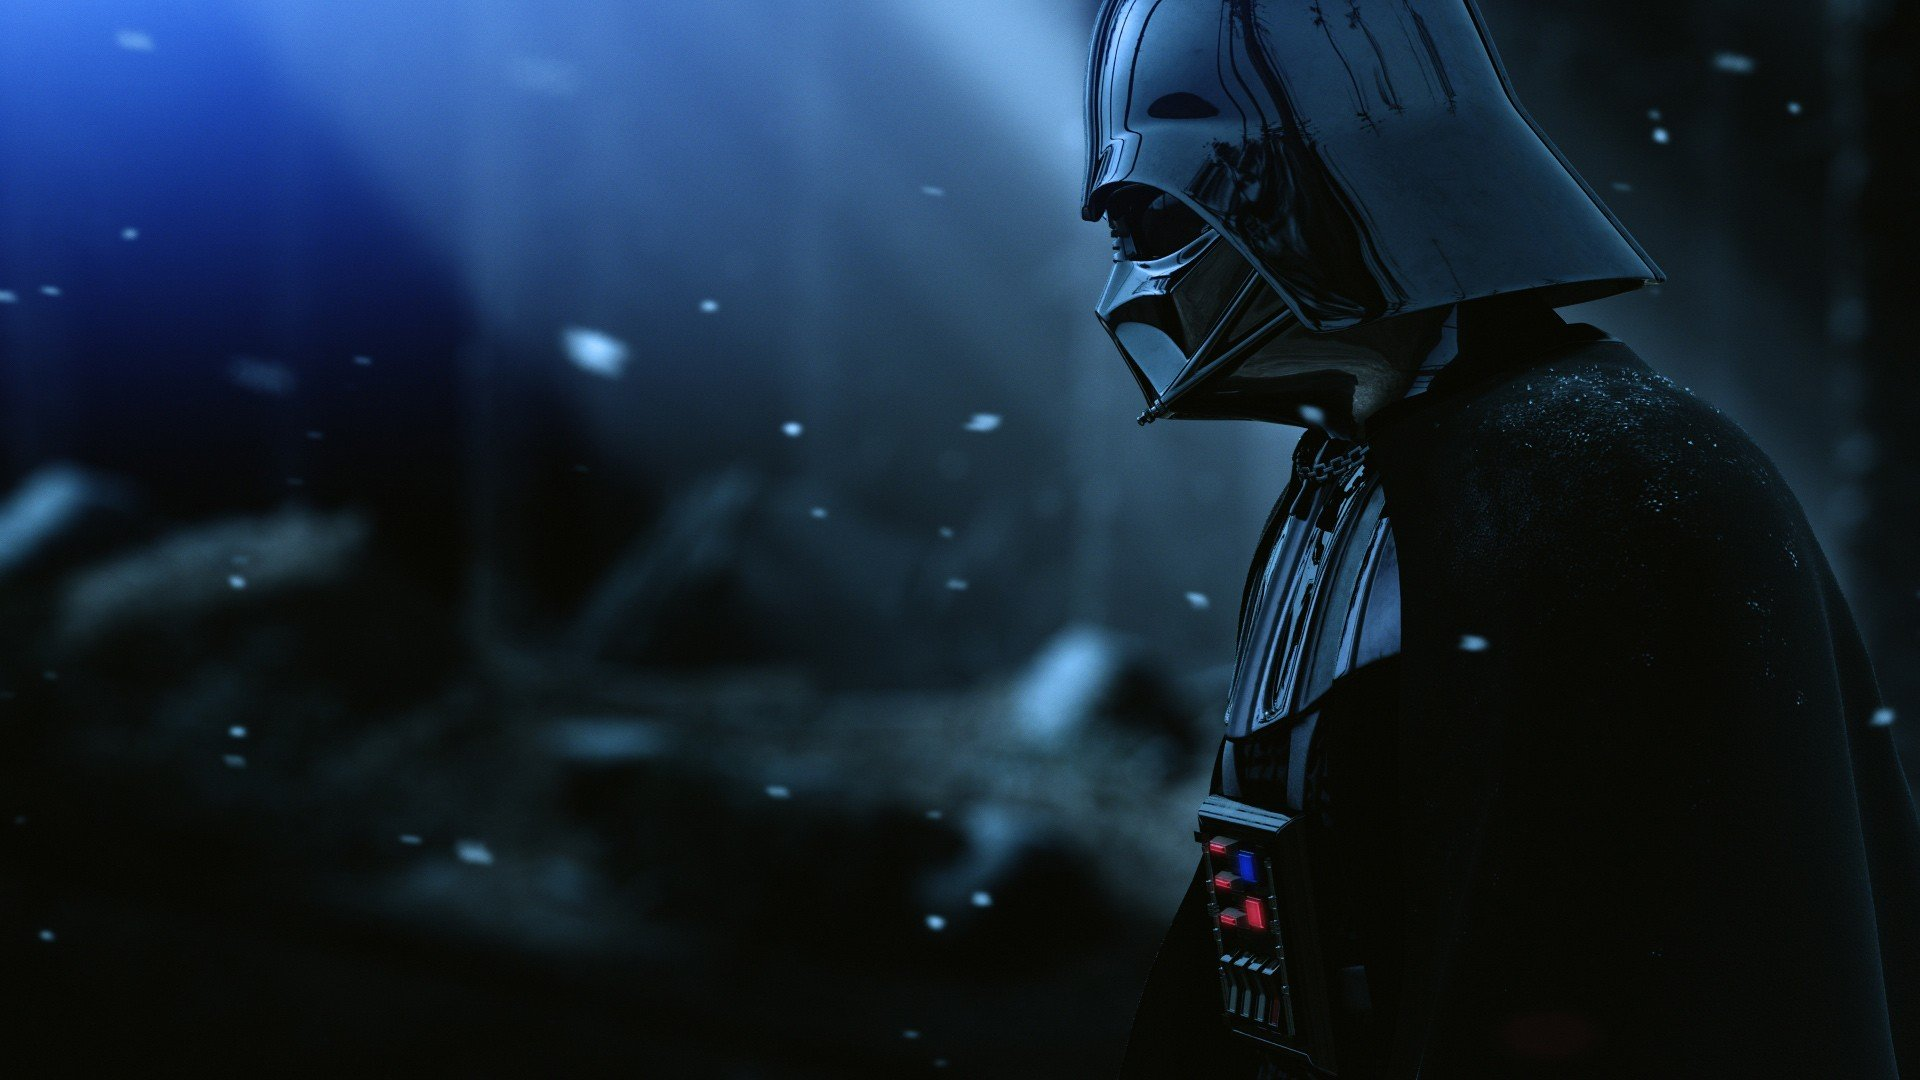 Free Star Wars Wallpapers And Screensavers.